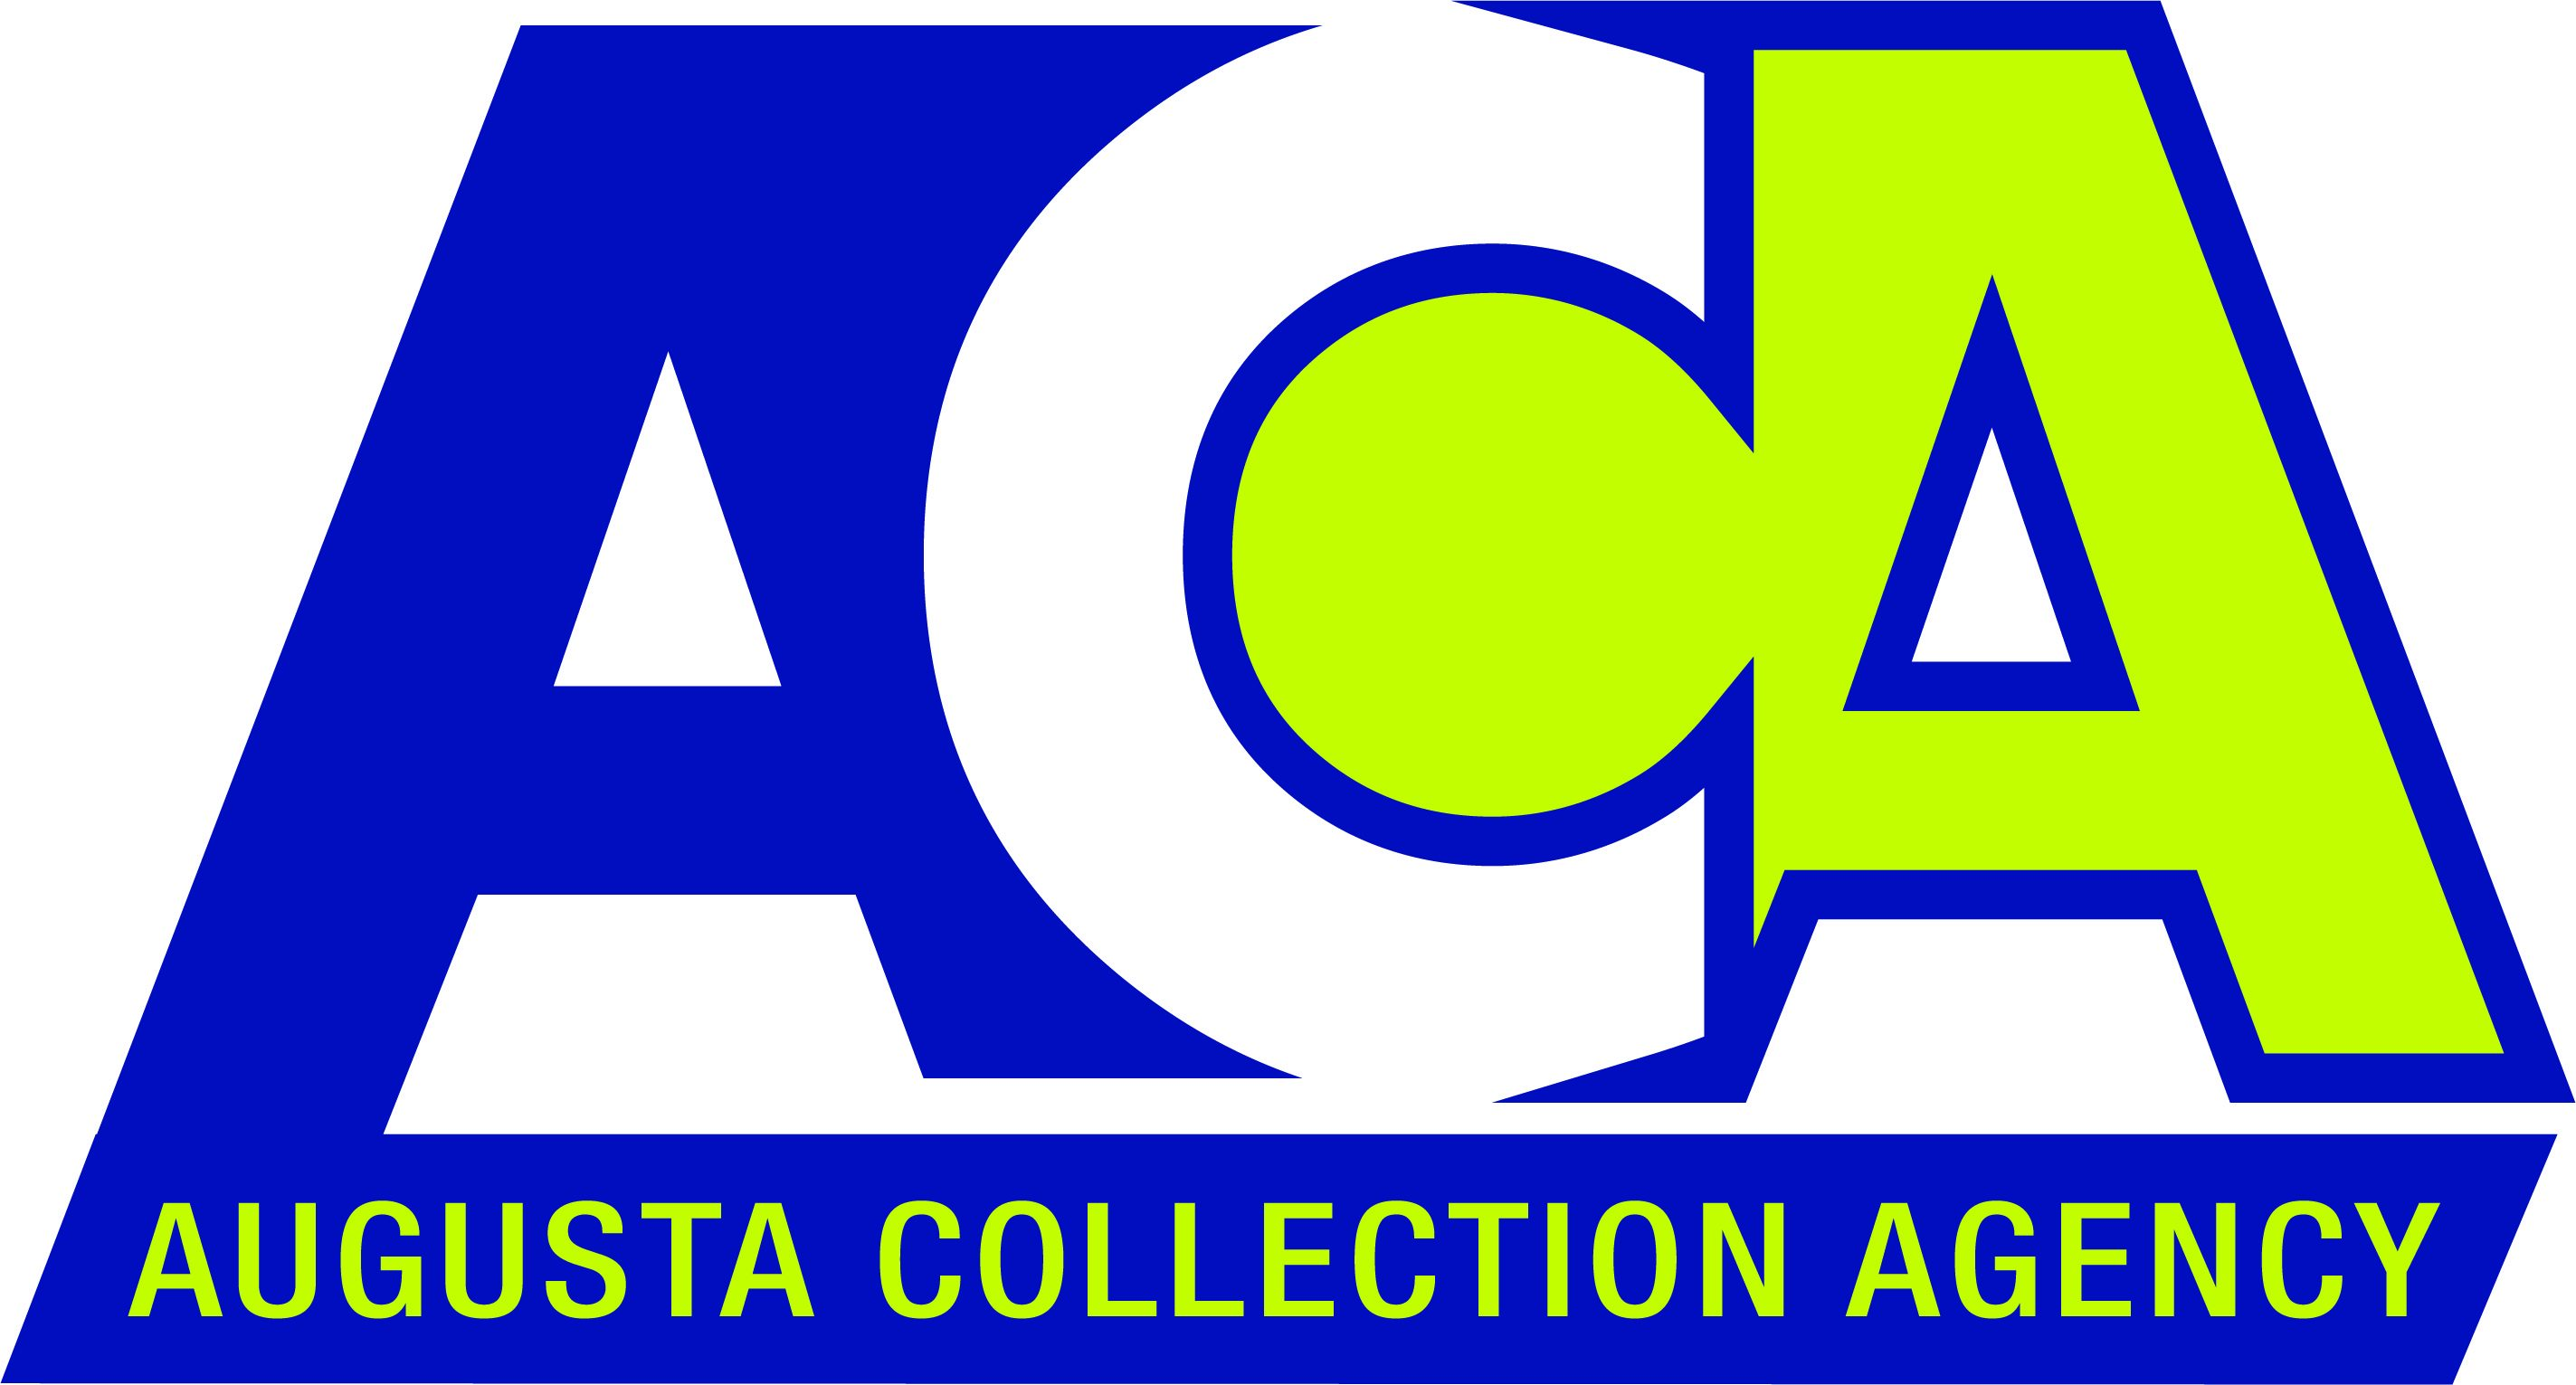 Augusta Collection Agency